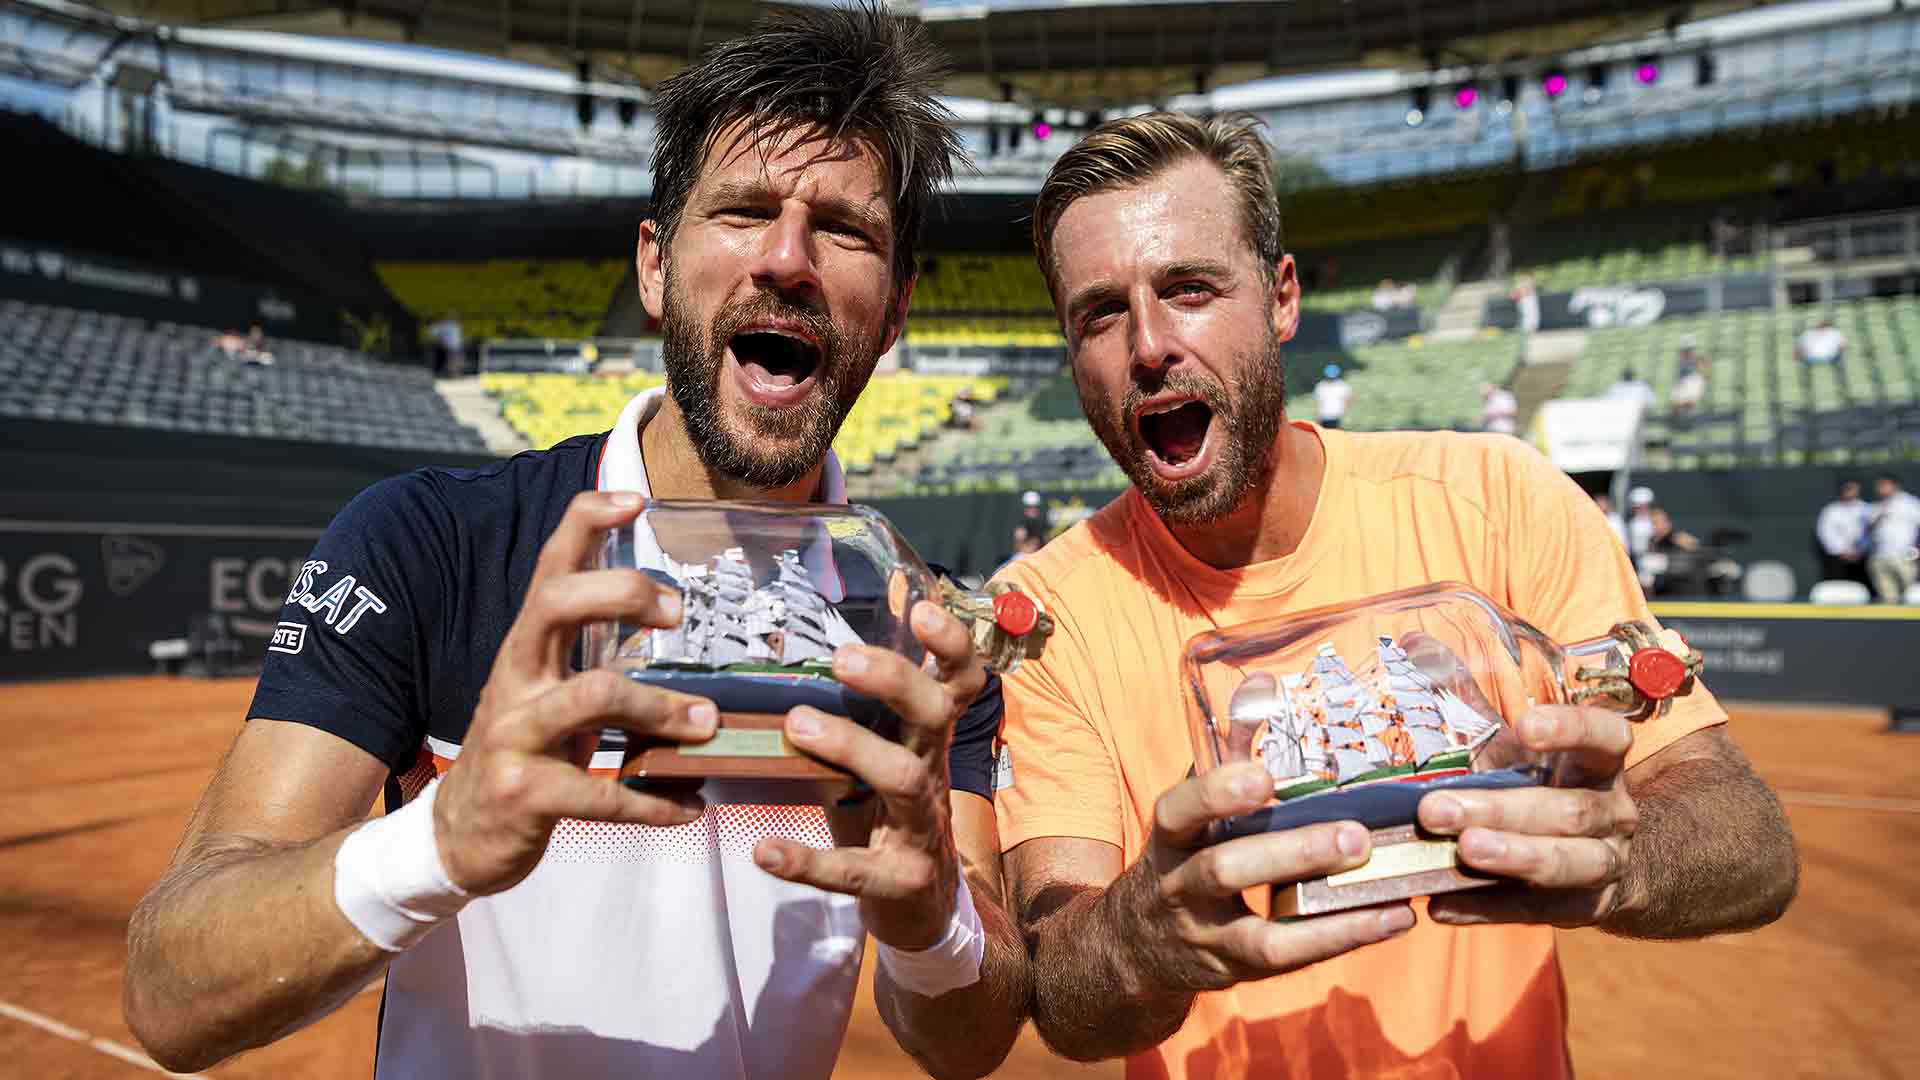 Jurgen Melzer and Oliver Marach improve to 15-9 at tour-level as a team.